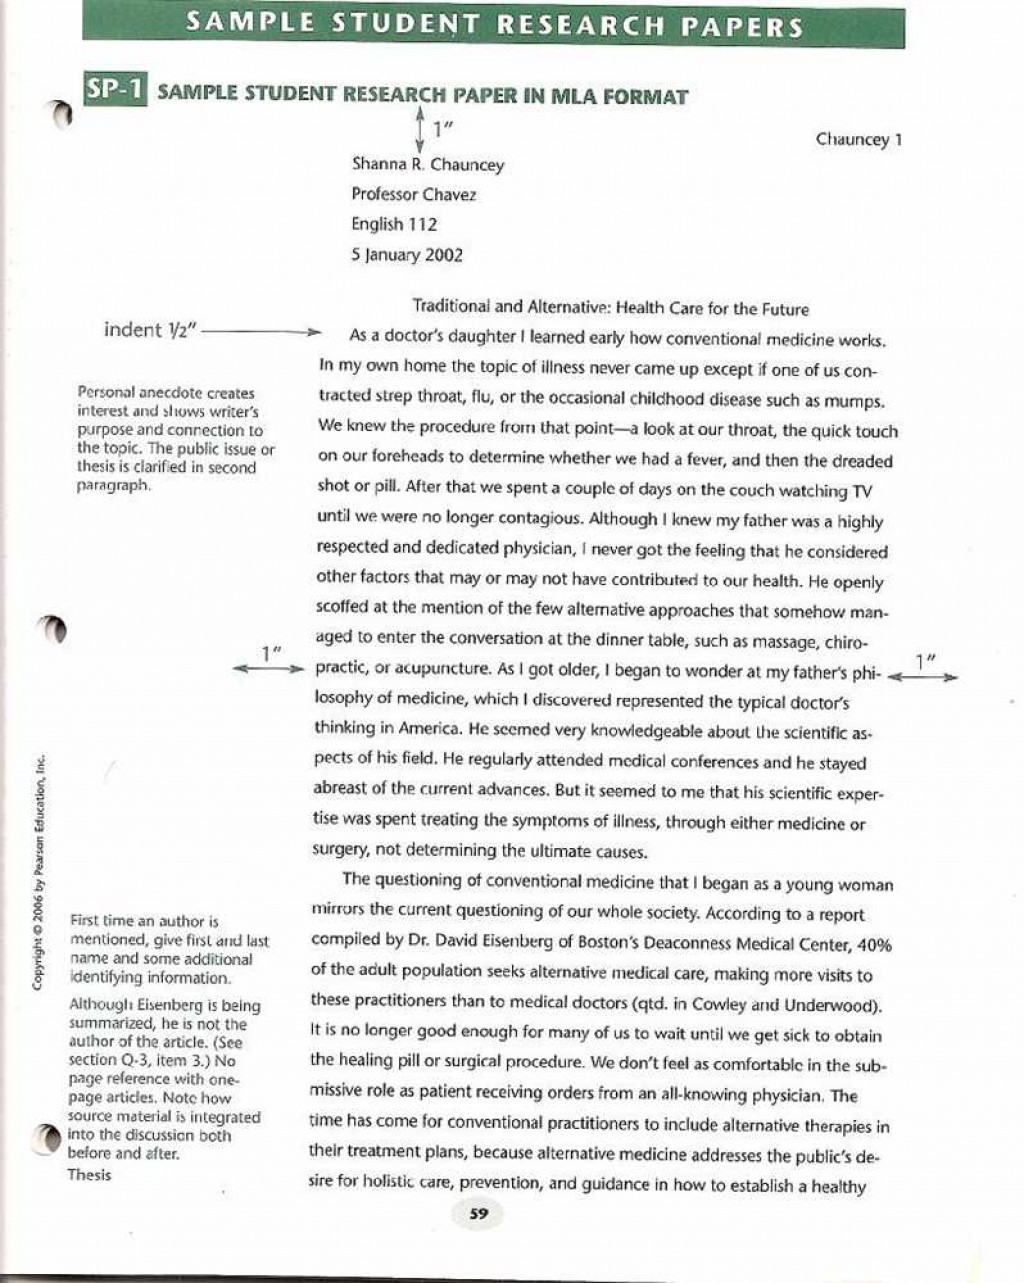 007 Sample Papper Research Paper Unusual Formatting Format Apa Template Mla Style Large